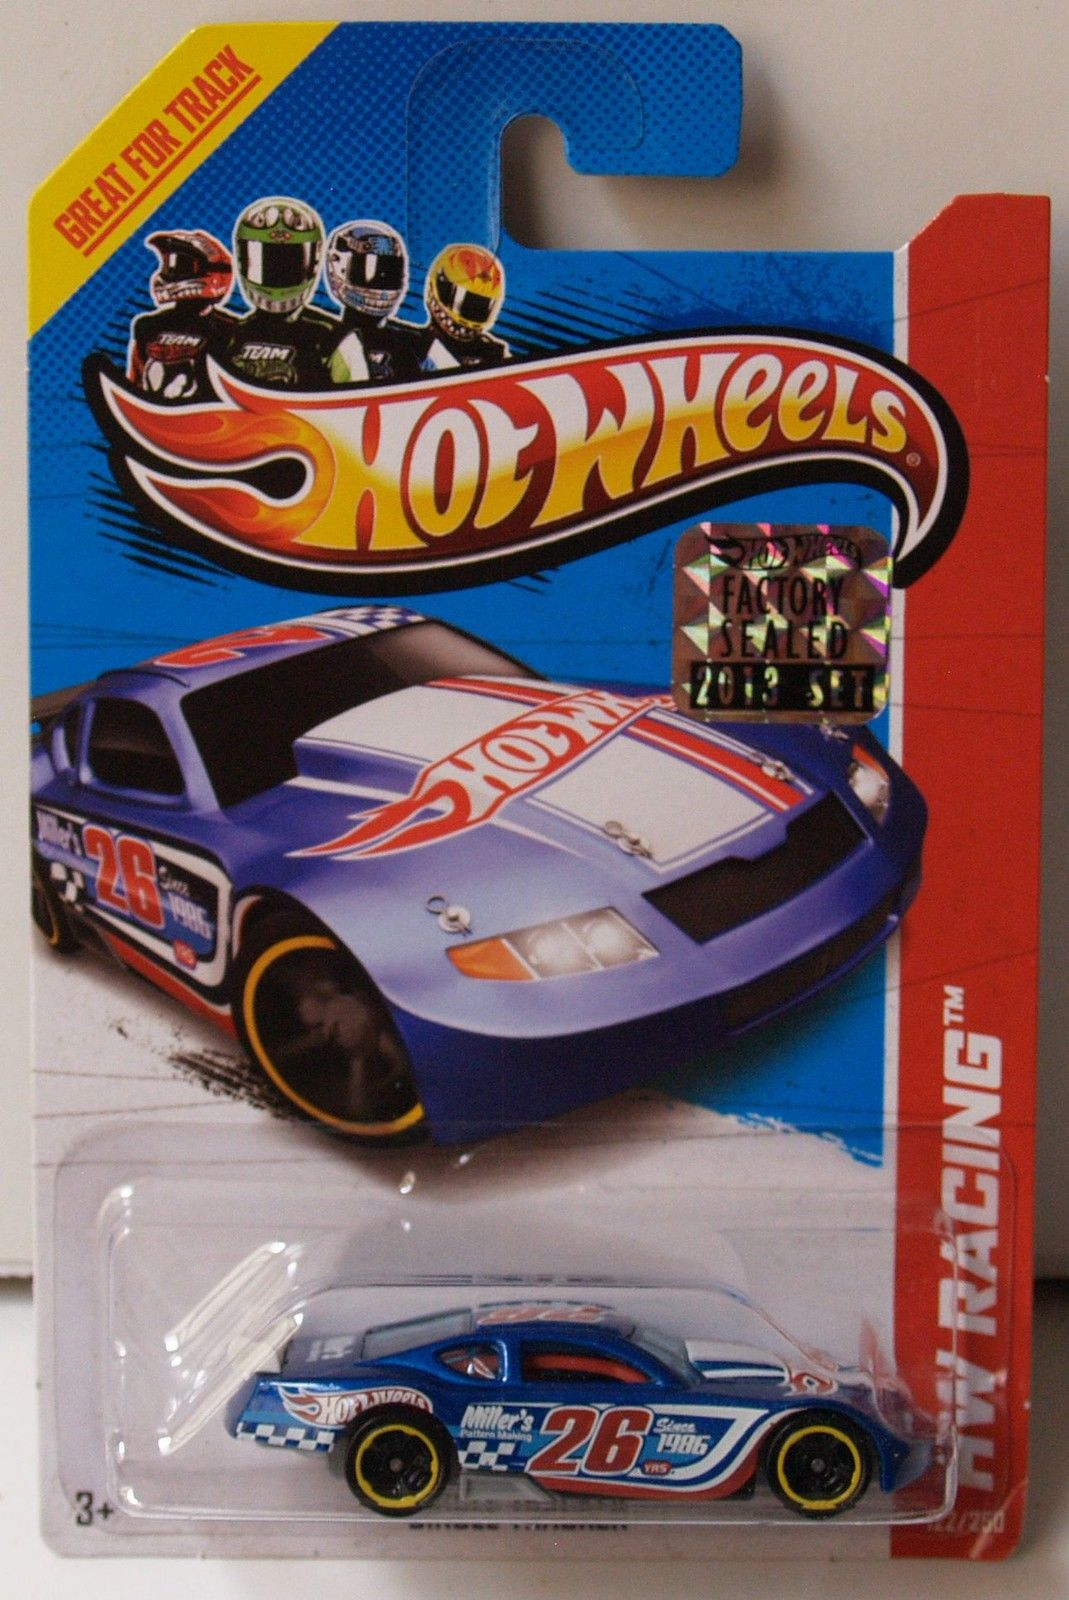 HOT WHEELS 2013 HW RACING TRACK ACES CIRCLE TRACKER FACTORY SEALED